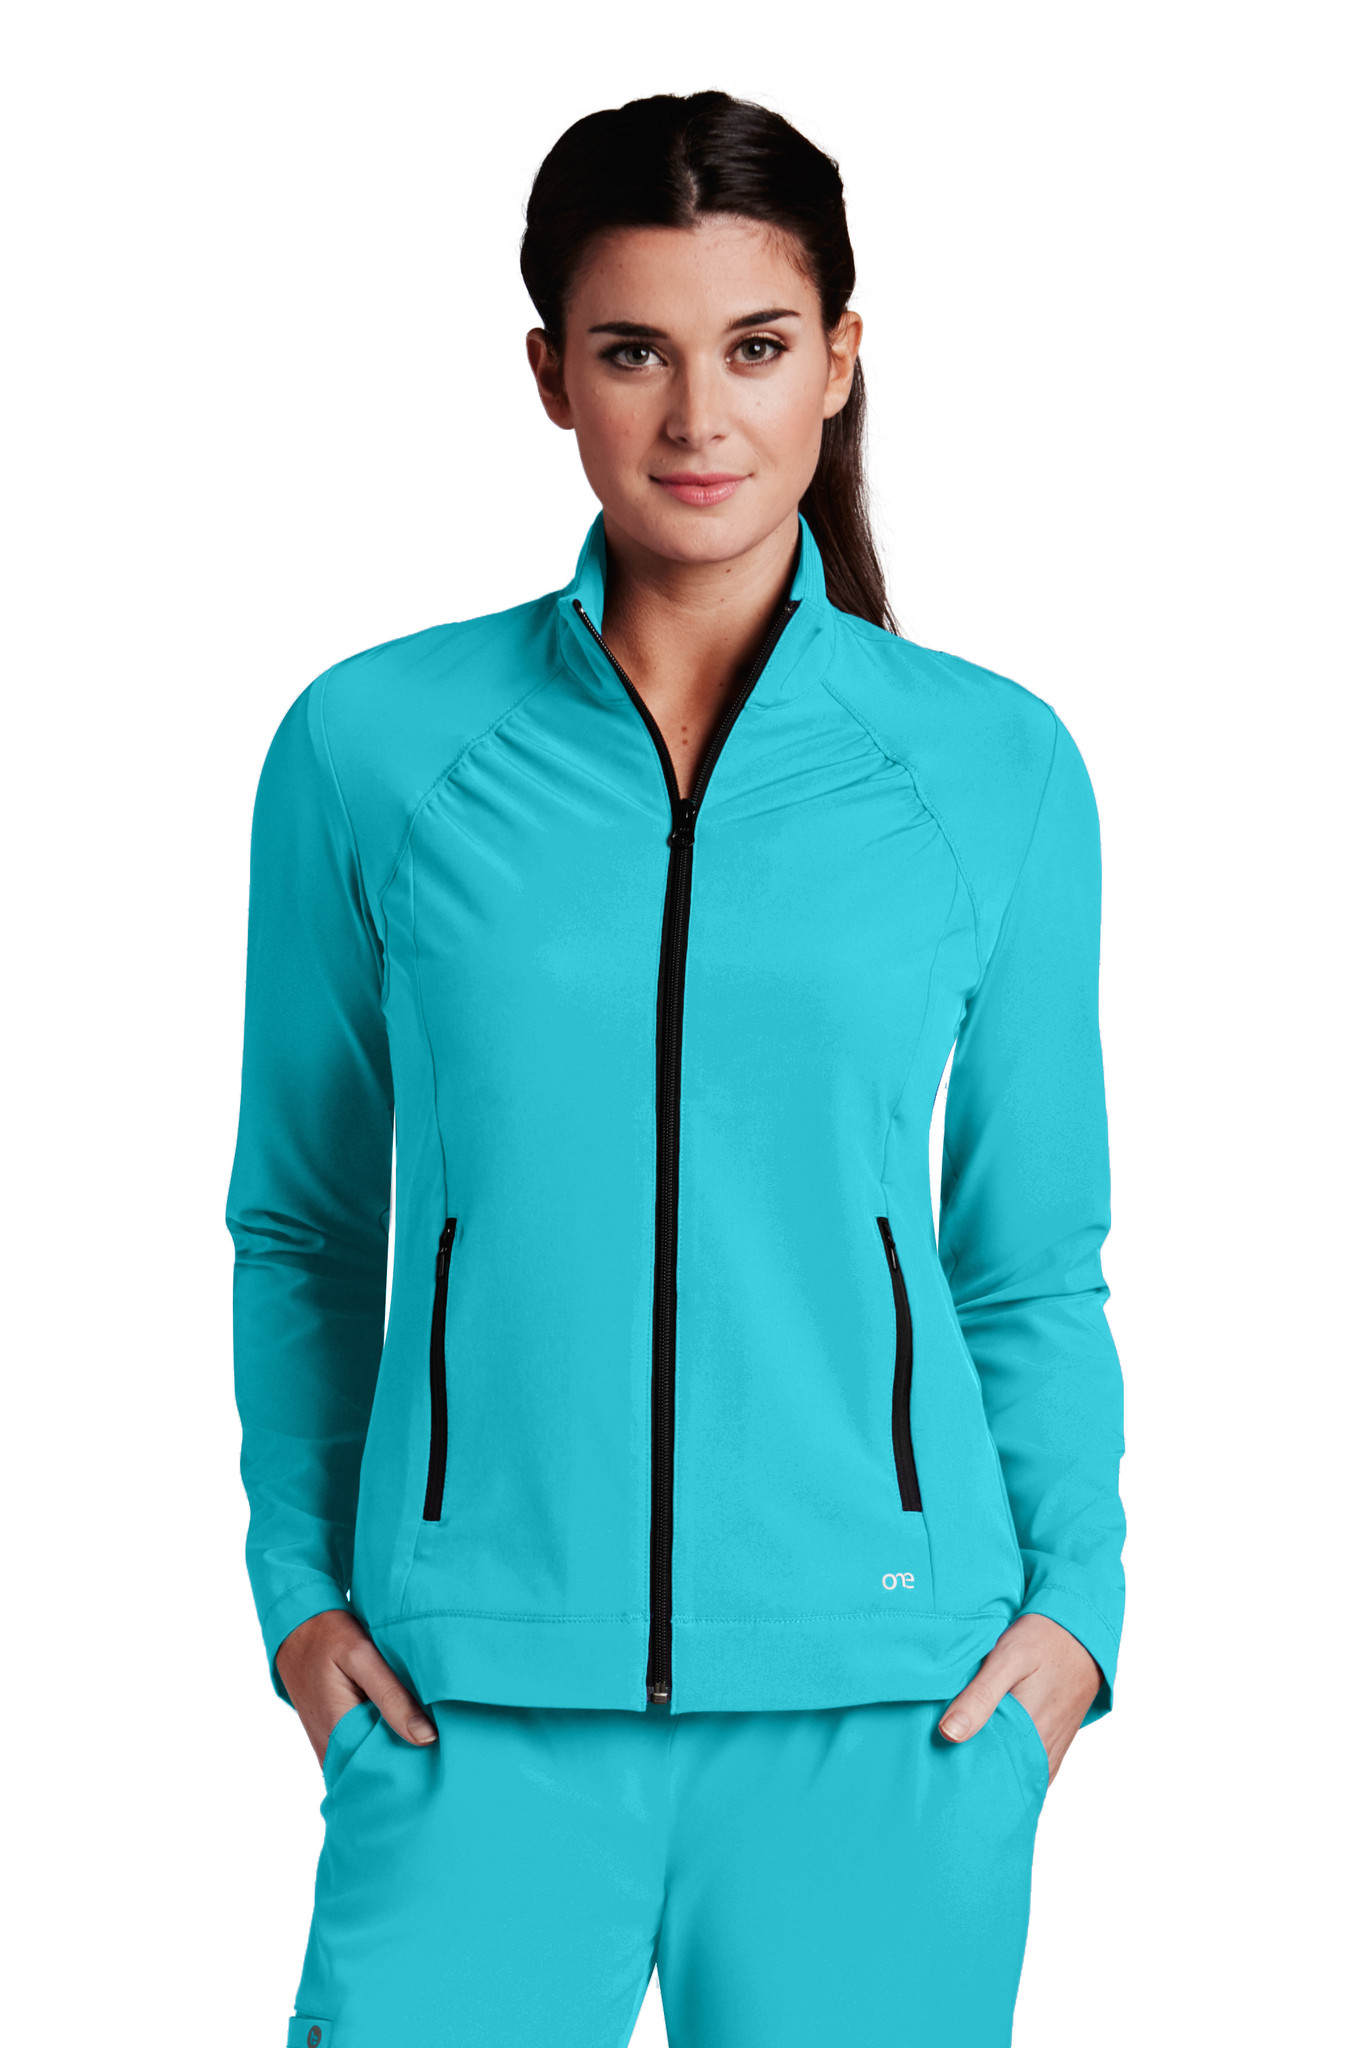 Barco Barco ONE 5405 Women's Lightweight Two Pocket Zip Up Scrub Jacket (5405) Front